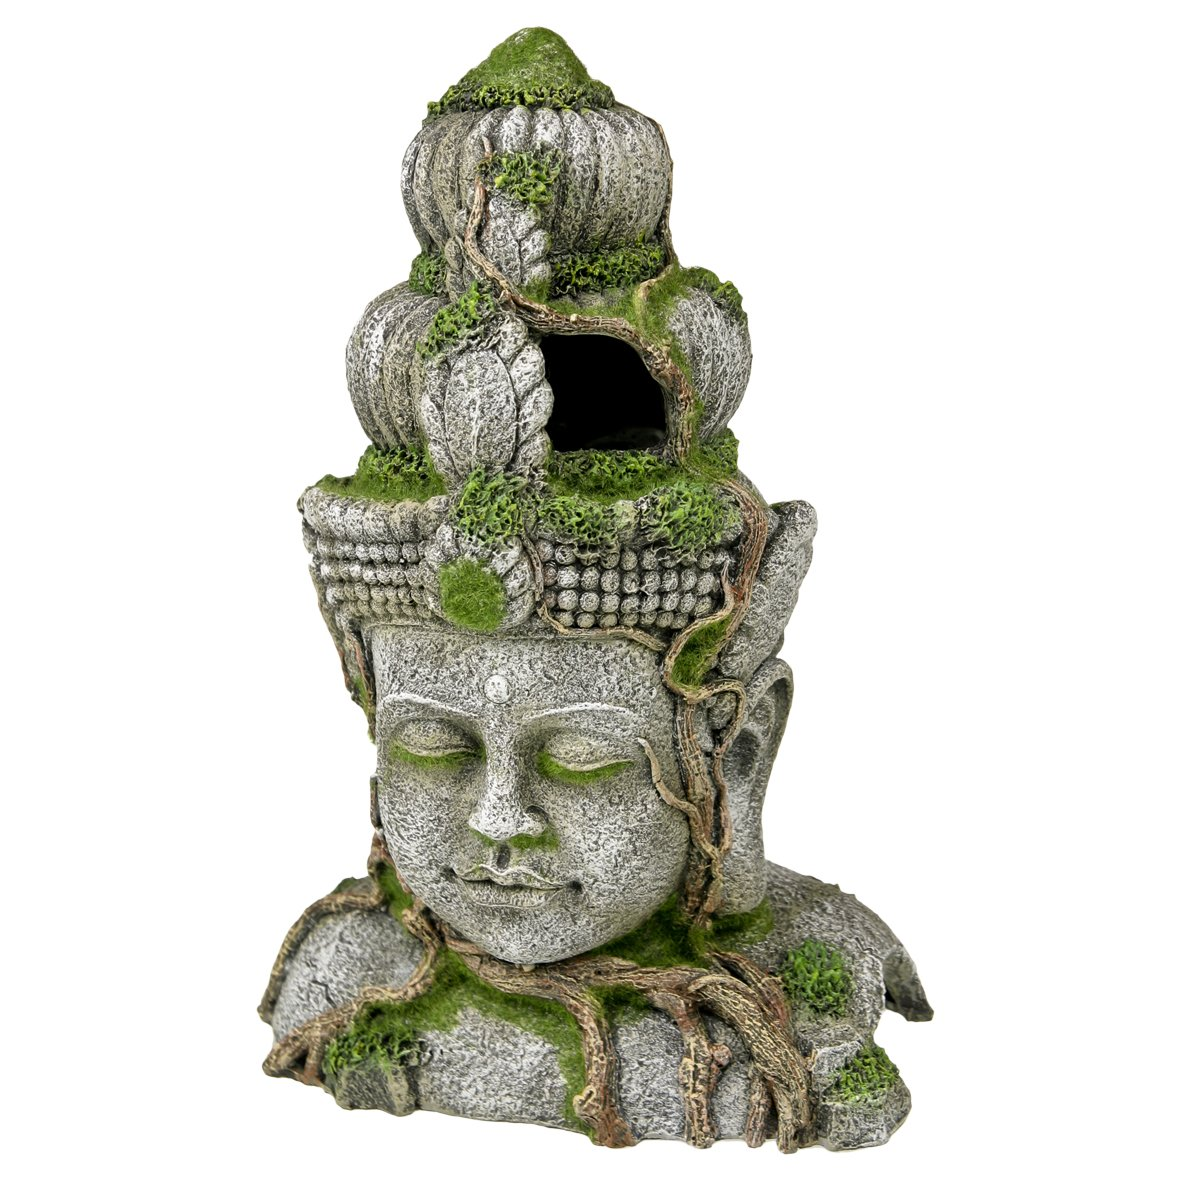 006159 Exotic Environments Ganesha Statue with Moss Prime Pet Deals - Code 1 EE-694